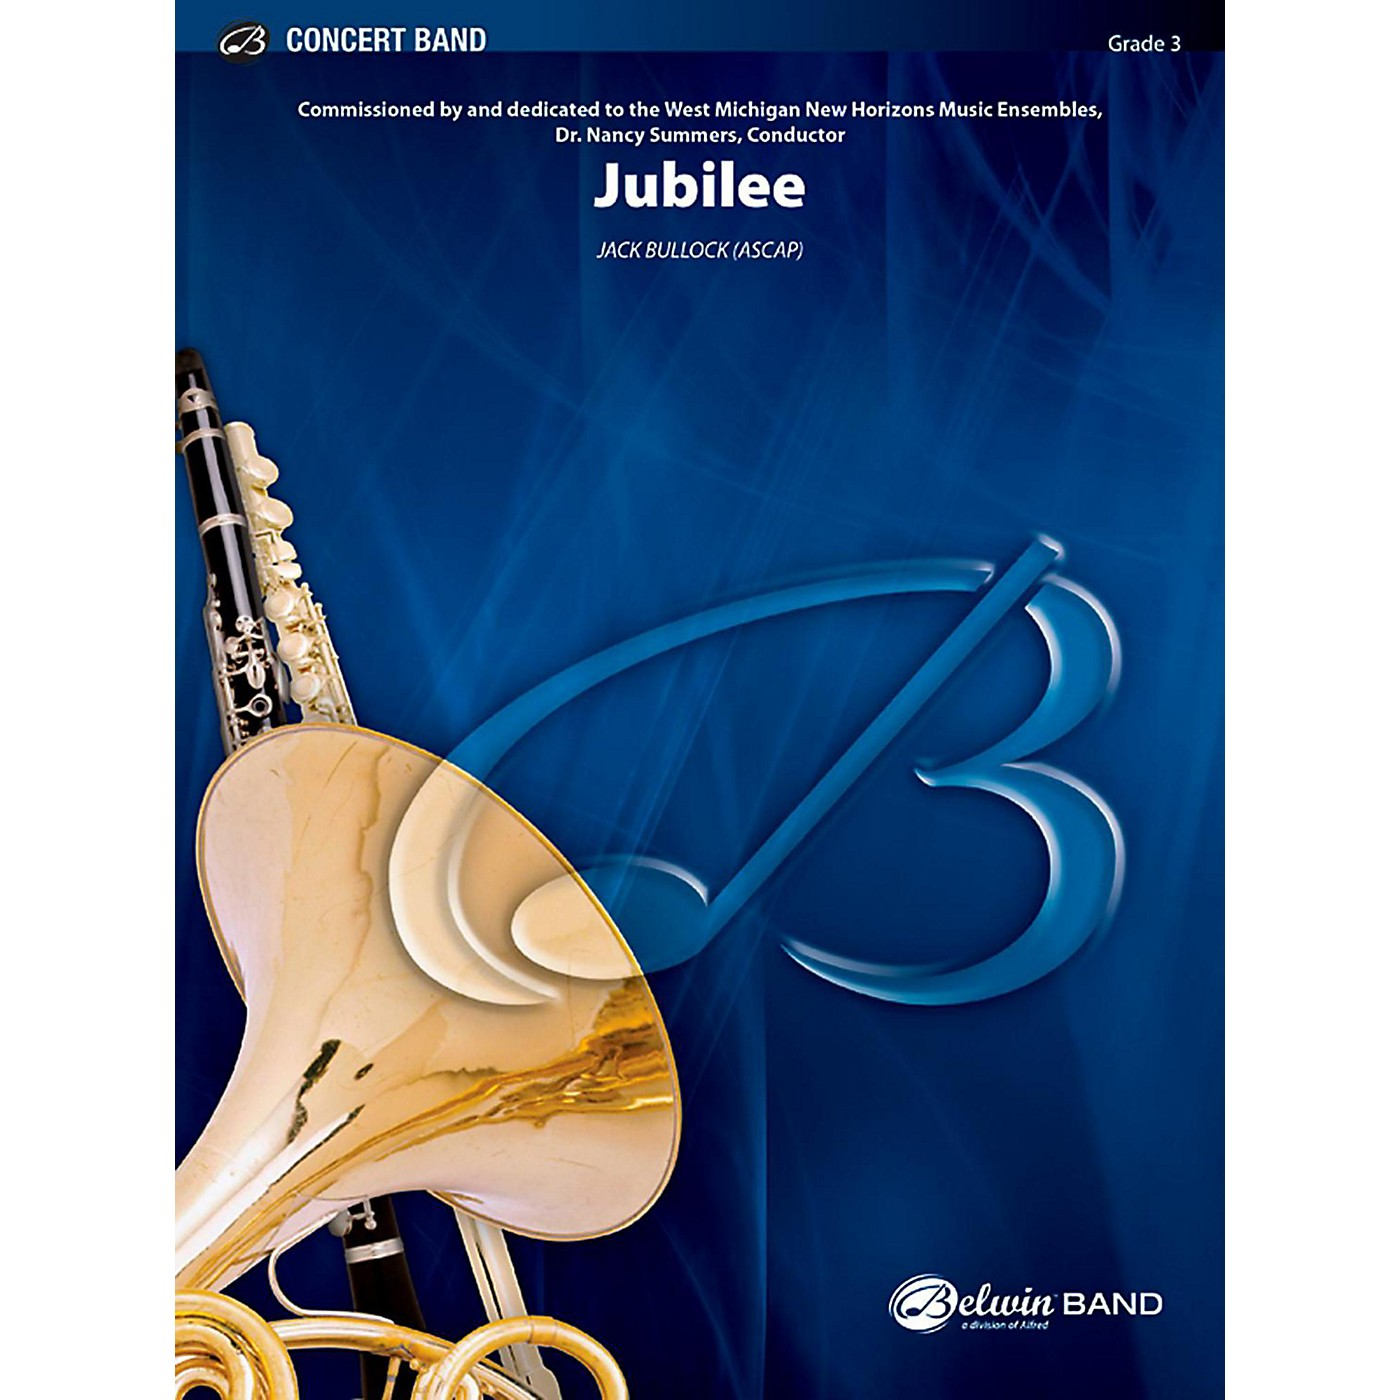 BELWIN Jubilee Concert Band Grade 3 (Medium Easy) thumbnail